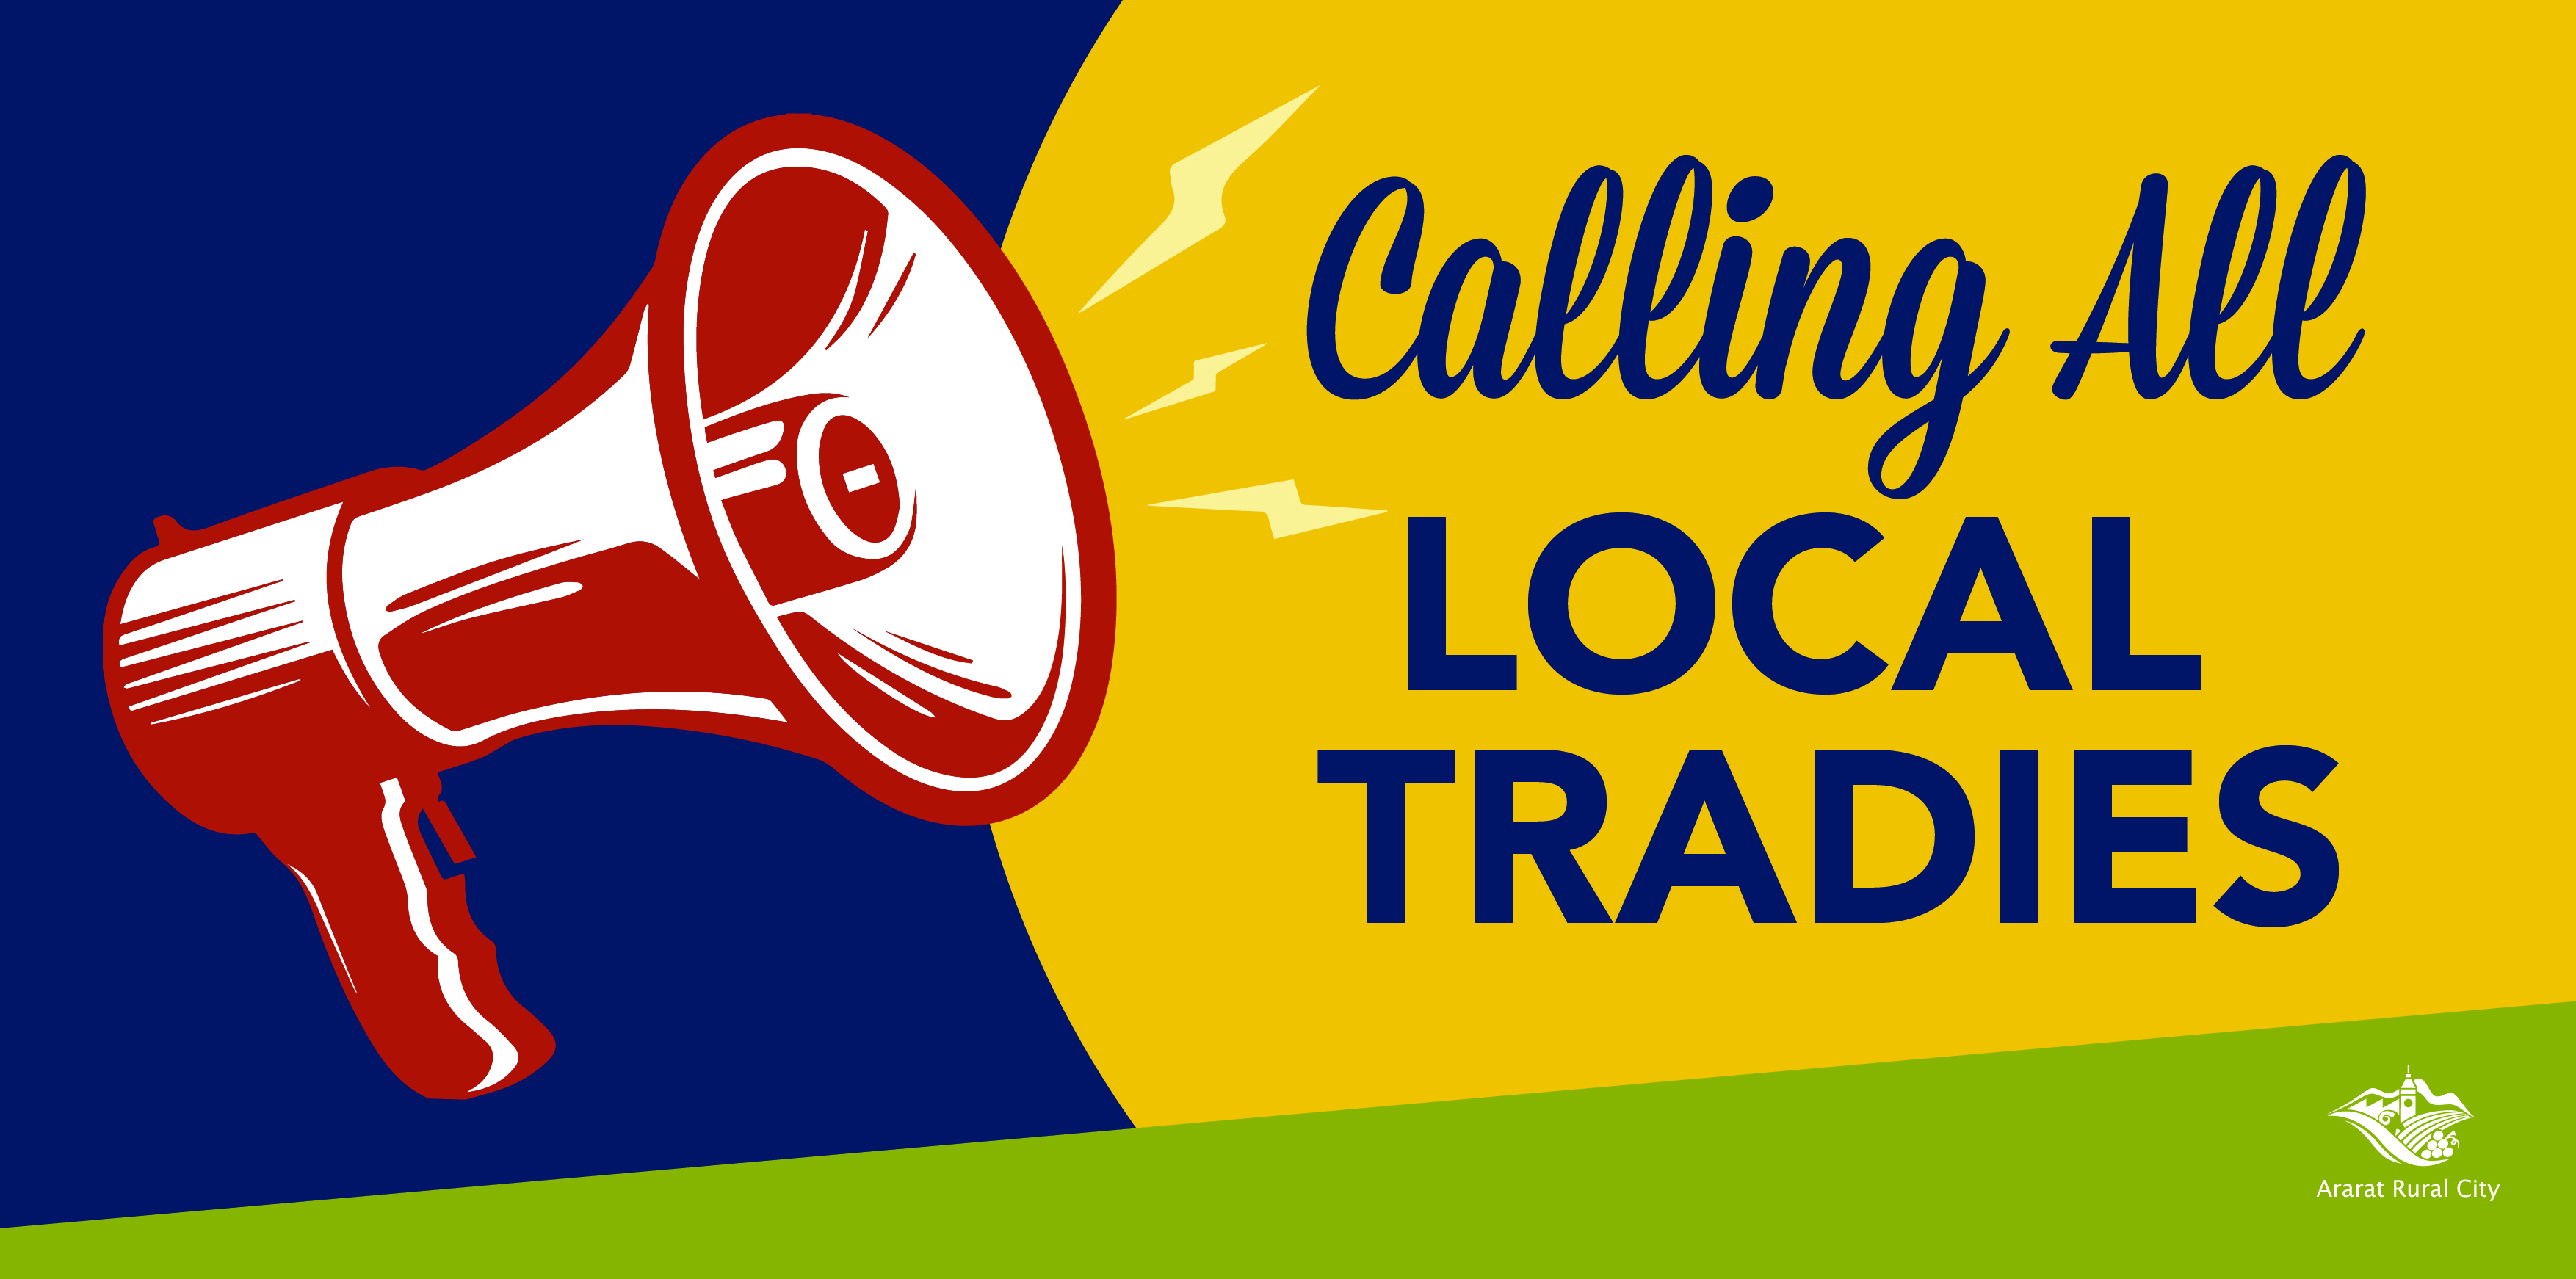 Local tradies encouraged to apply for preferred supplier list